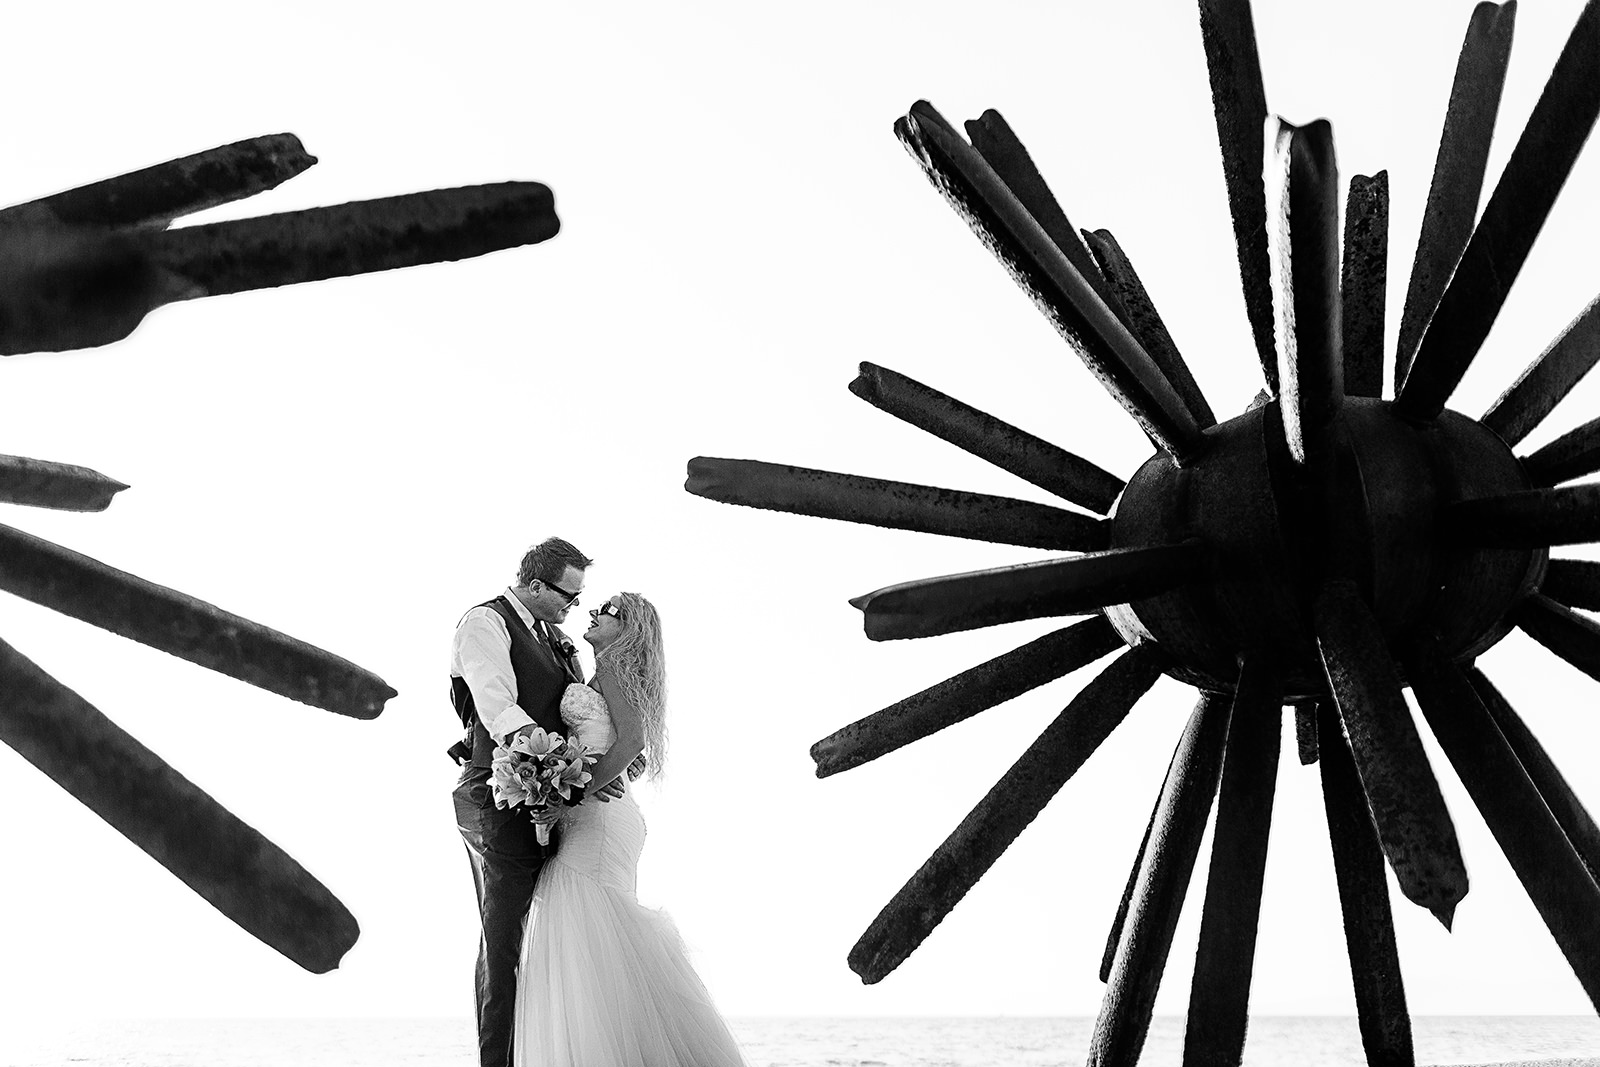 Couple on wedding outfits looking at each other between metal spiky structures